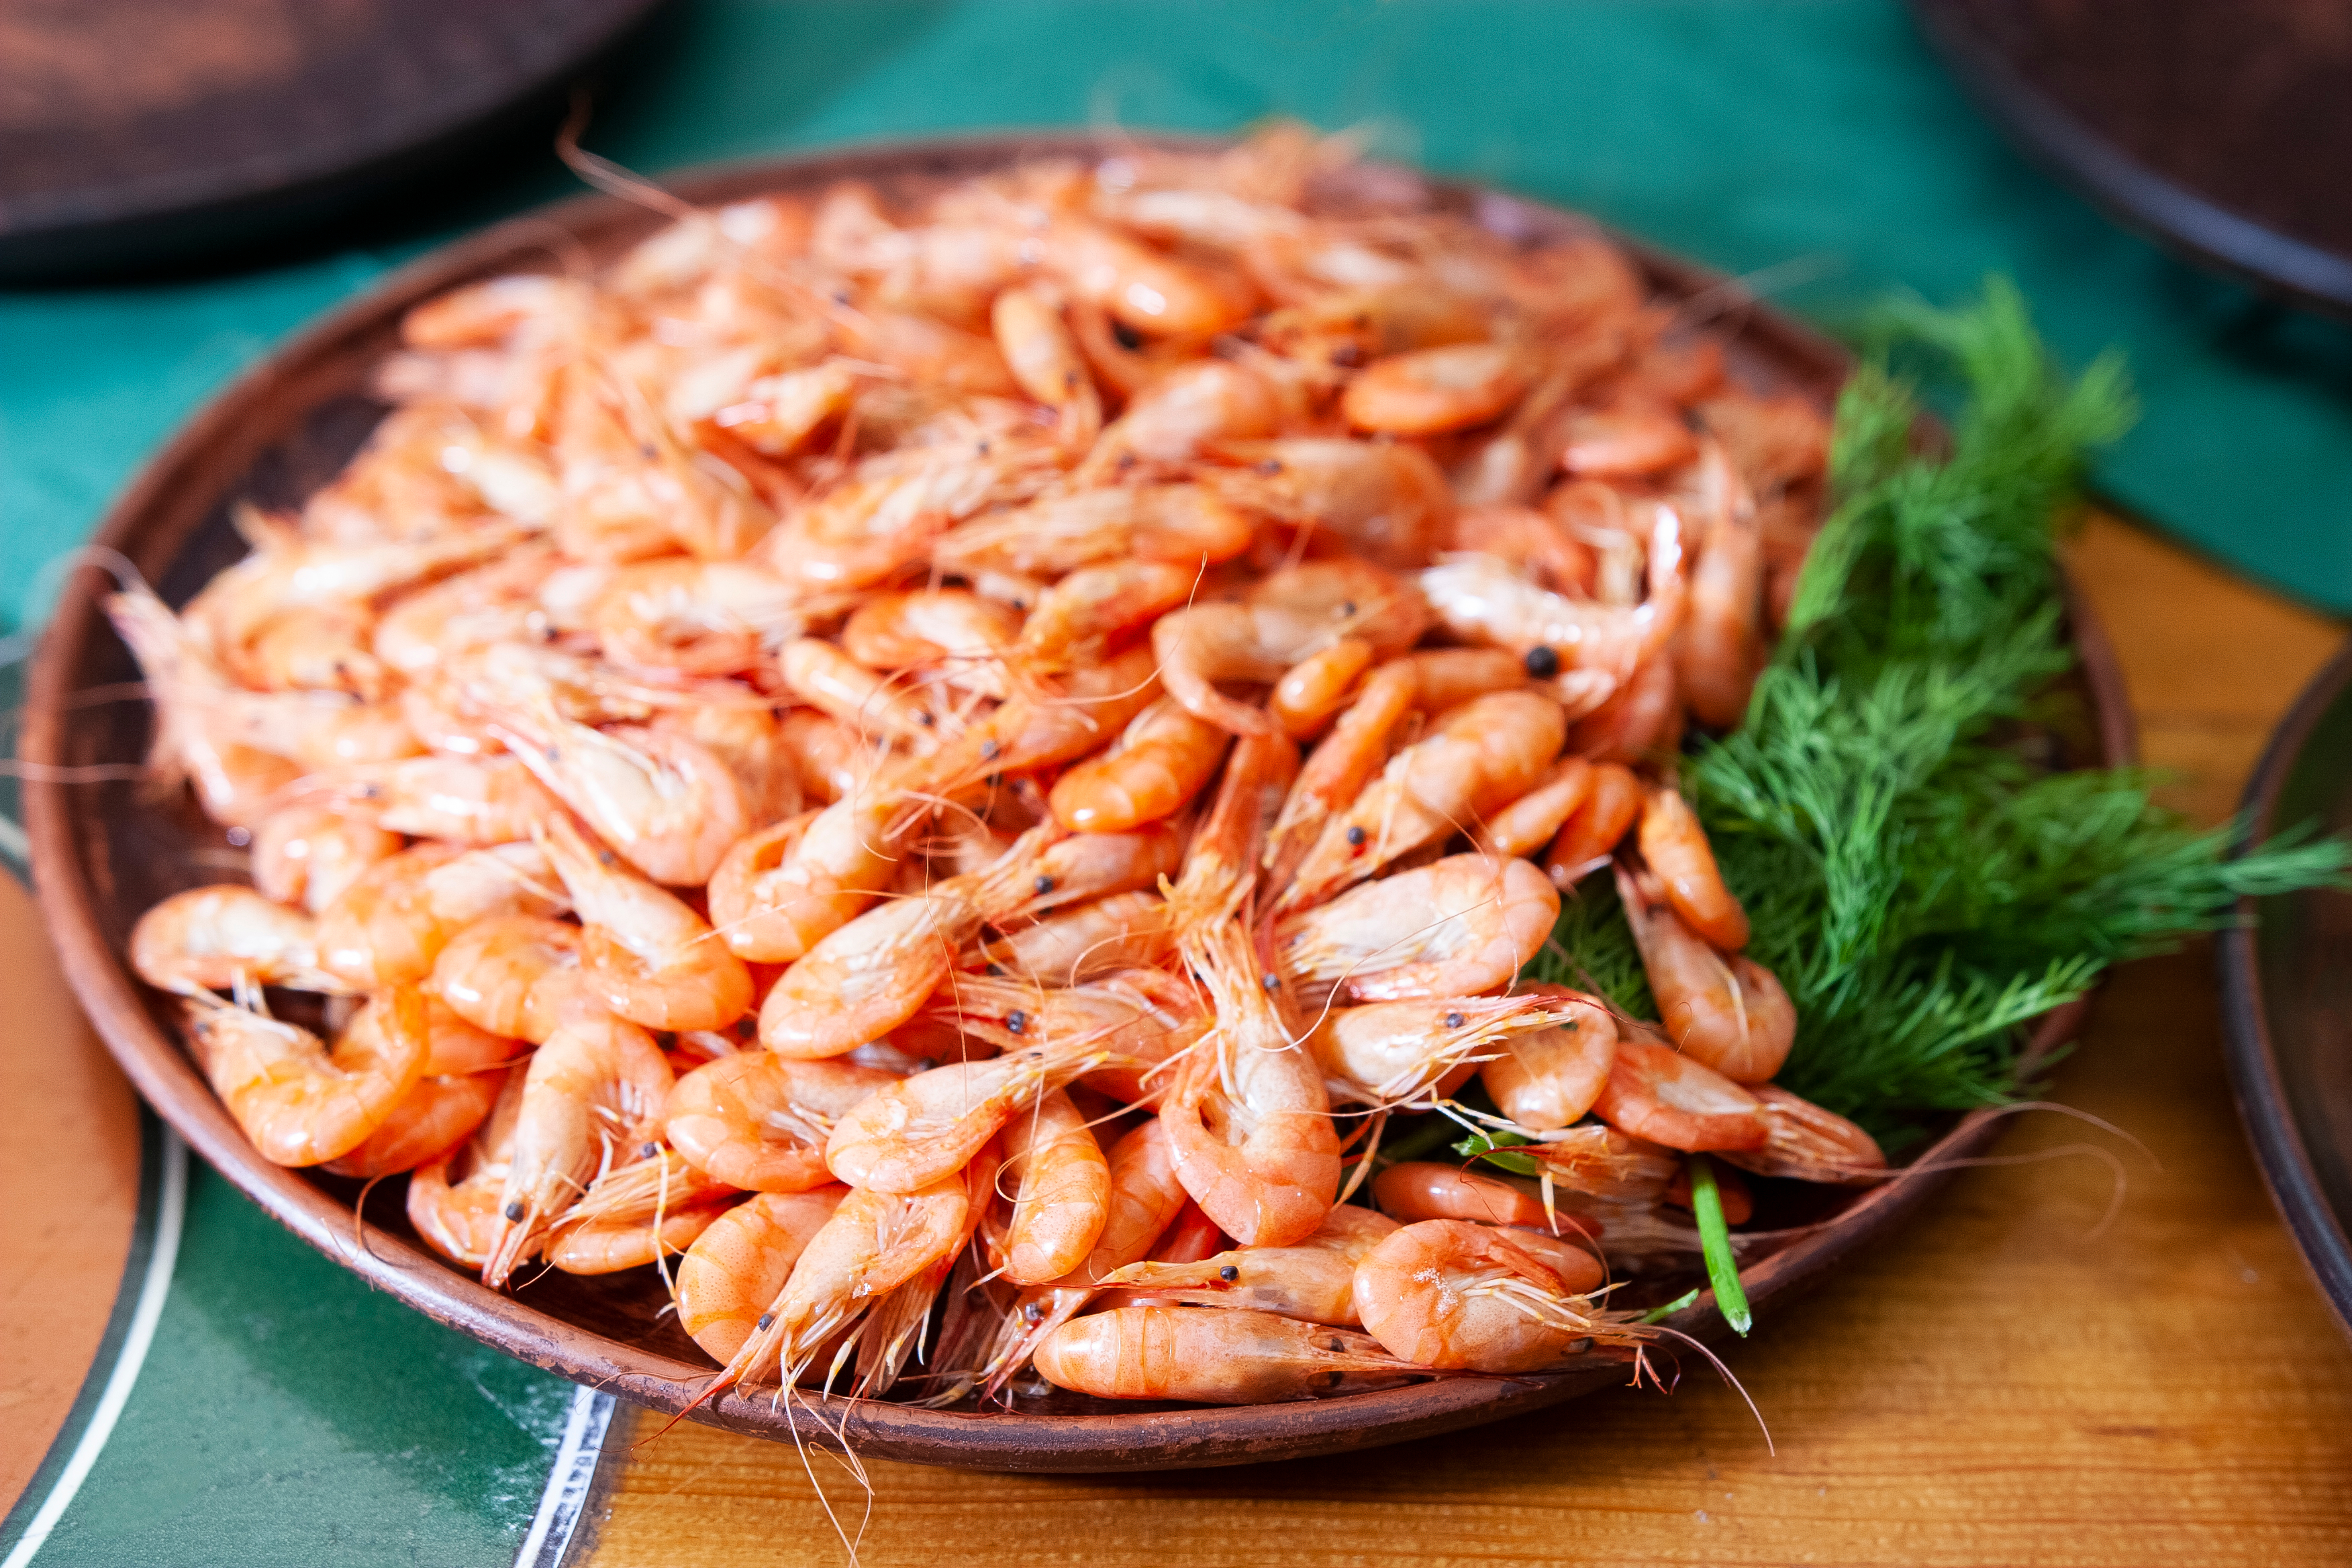 Shrimp. Shrimps lie on a plate